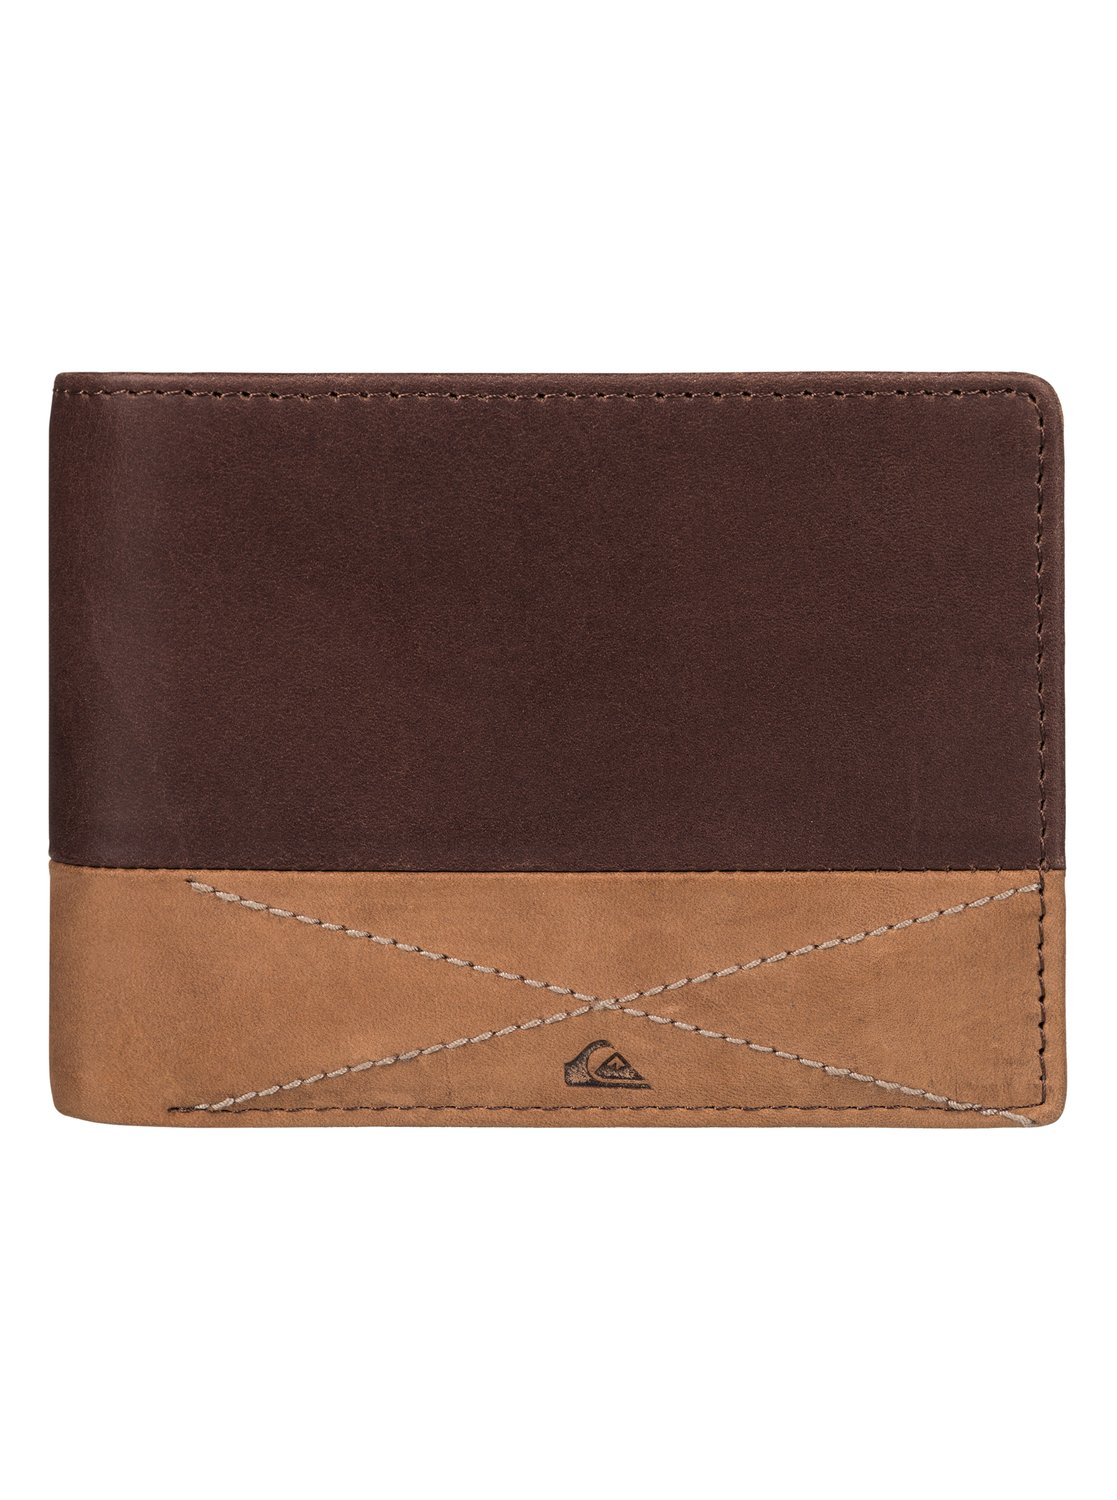 New Classical - Leather Wallet